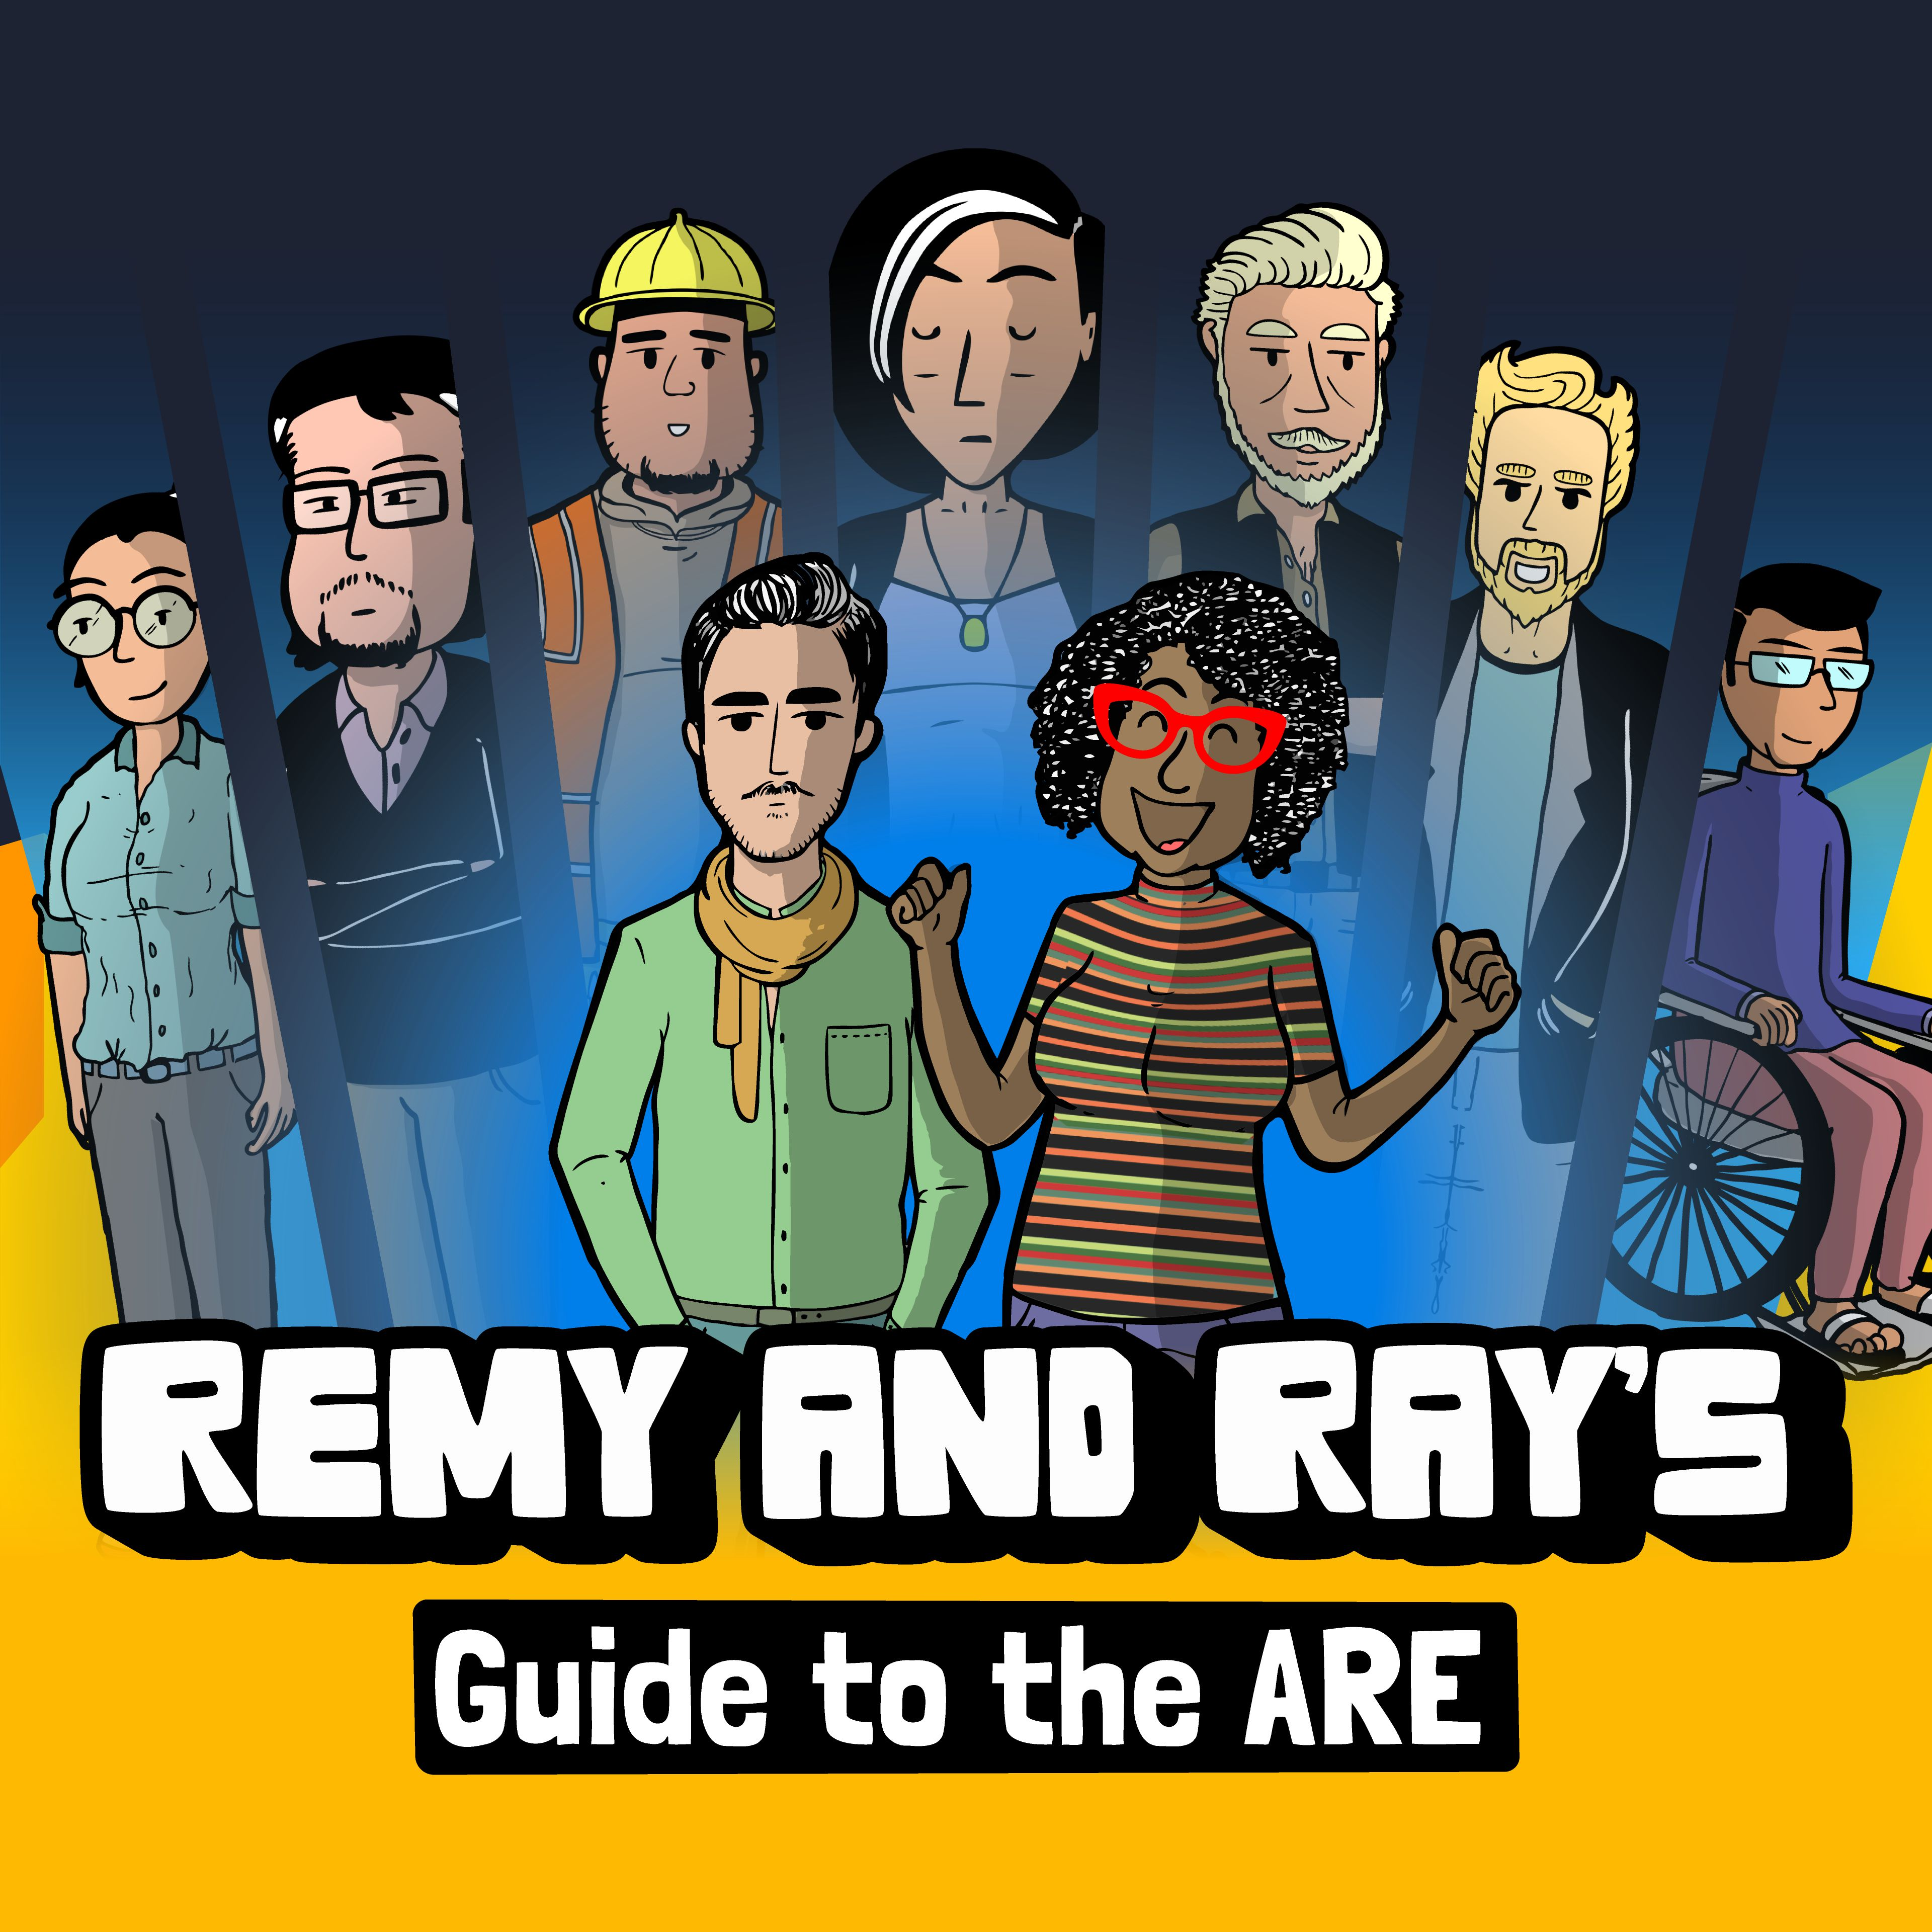 Remy & Ray's Guide to the ARE by DesignClass